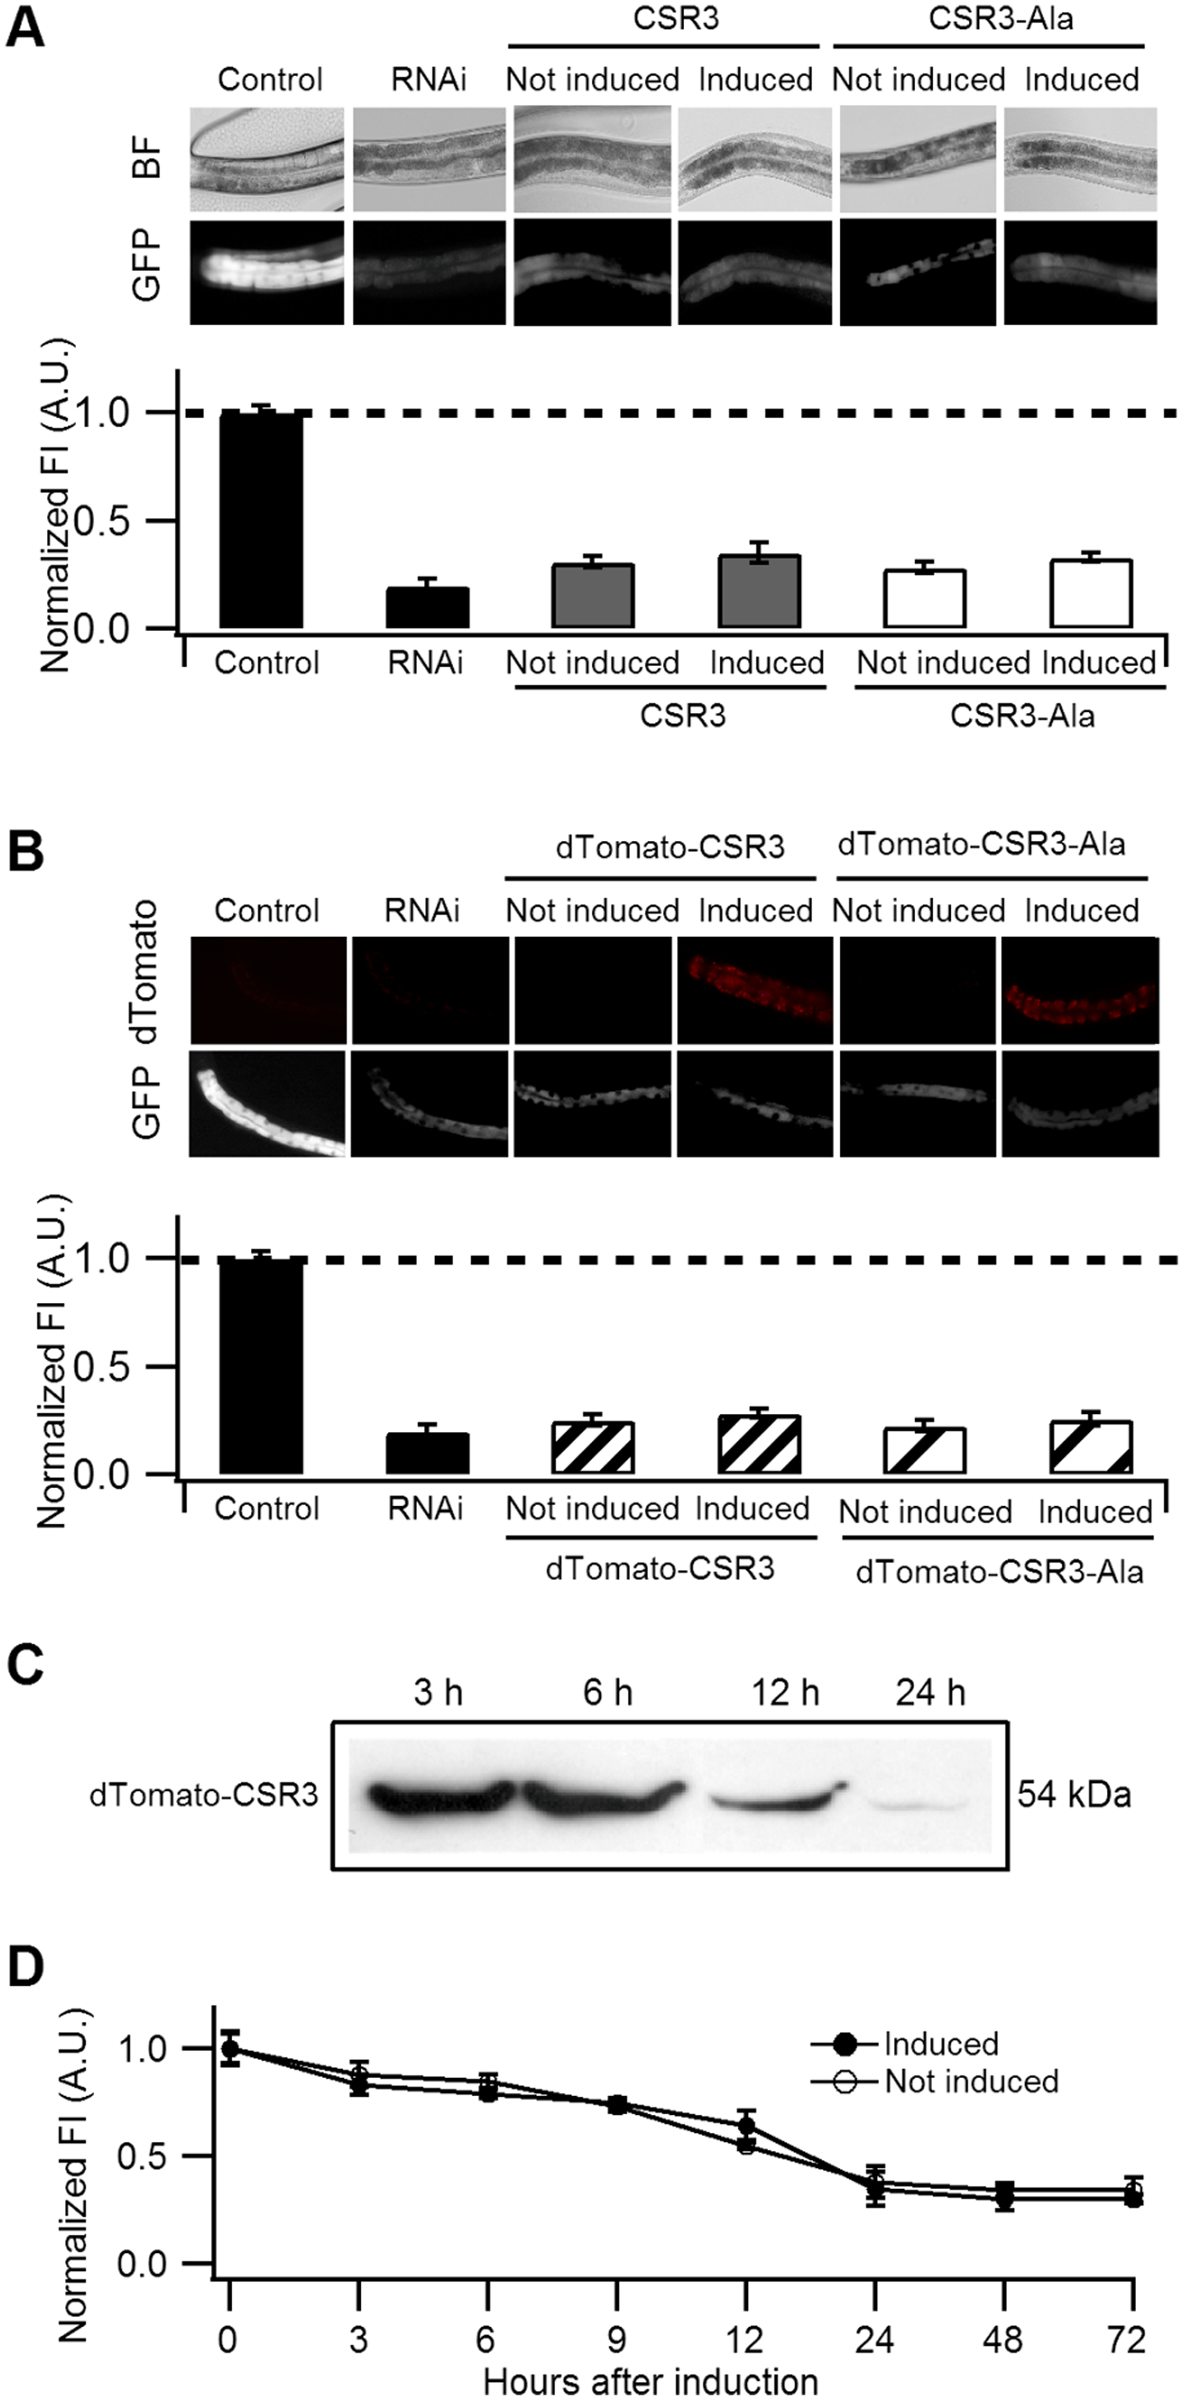 Ability of CSR3 and CSR3-Ala to interfere with <i>gfp</i> silencing in <i>gfp</i>-transgenic <i>C</i>. <i>elegans</i> (strain RT476) expressing GFP under an intestine-specific promoter.